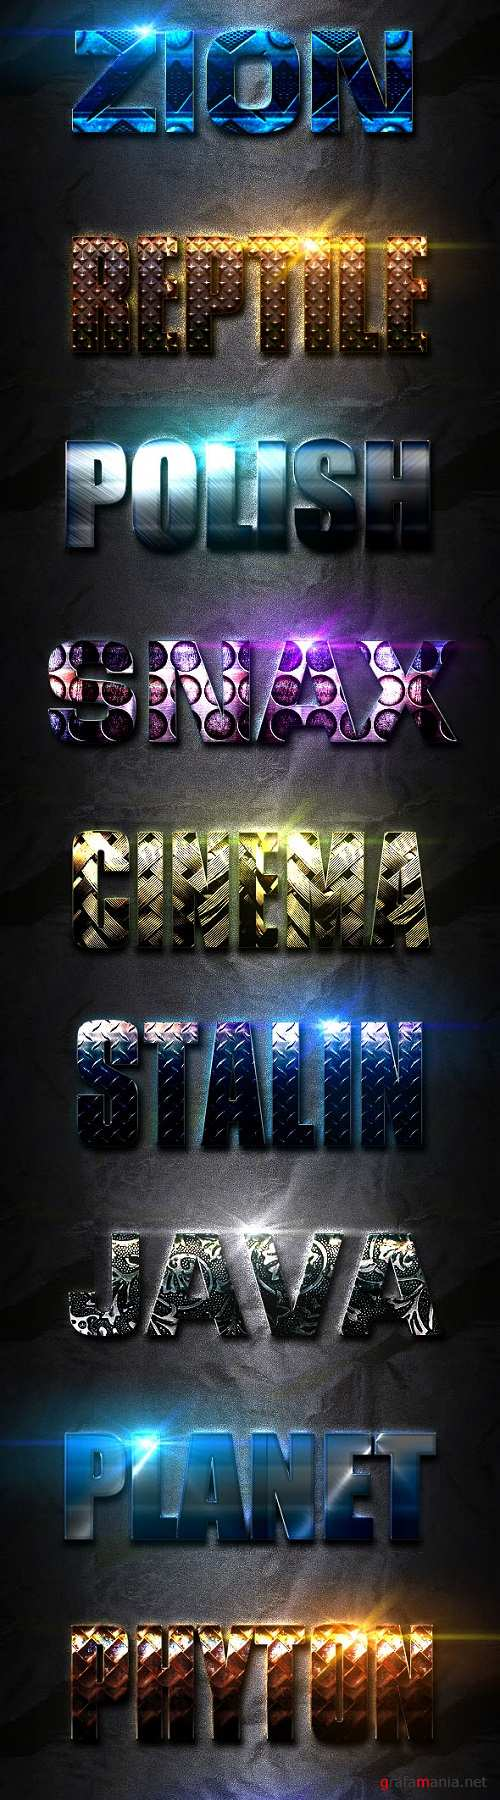 Light Photoshop Text Effect Vol 1 - 19873613